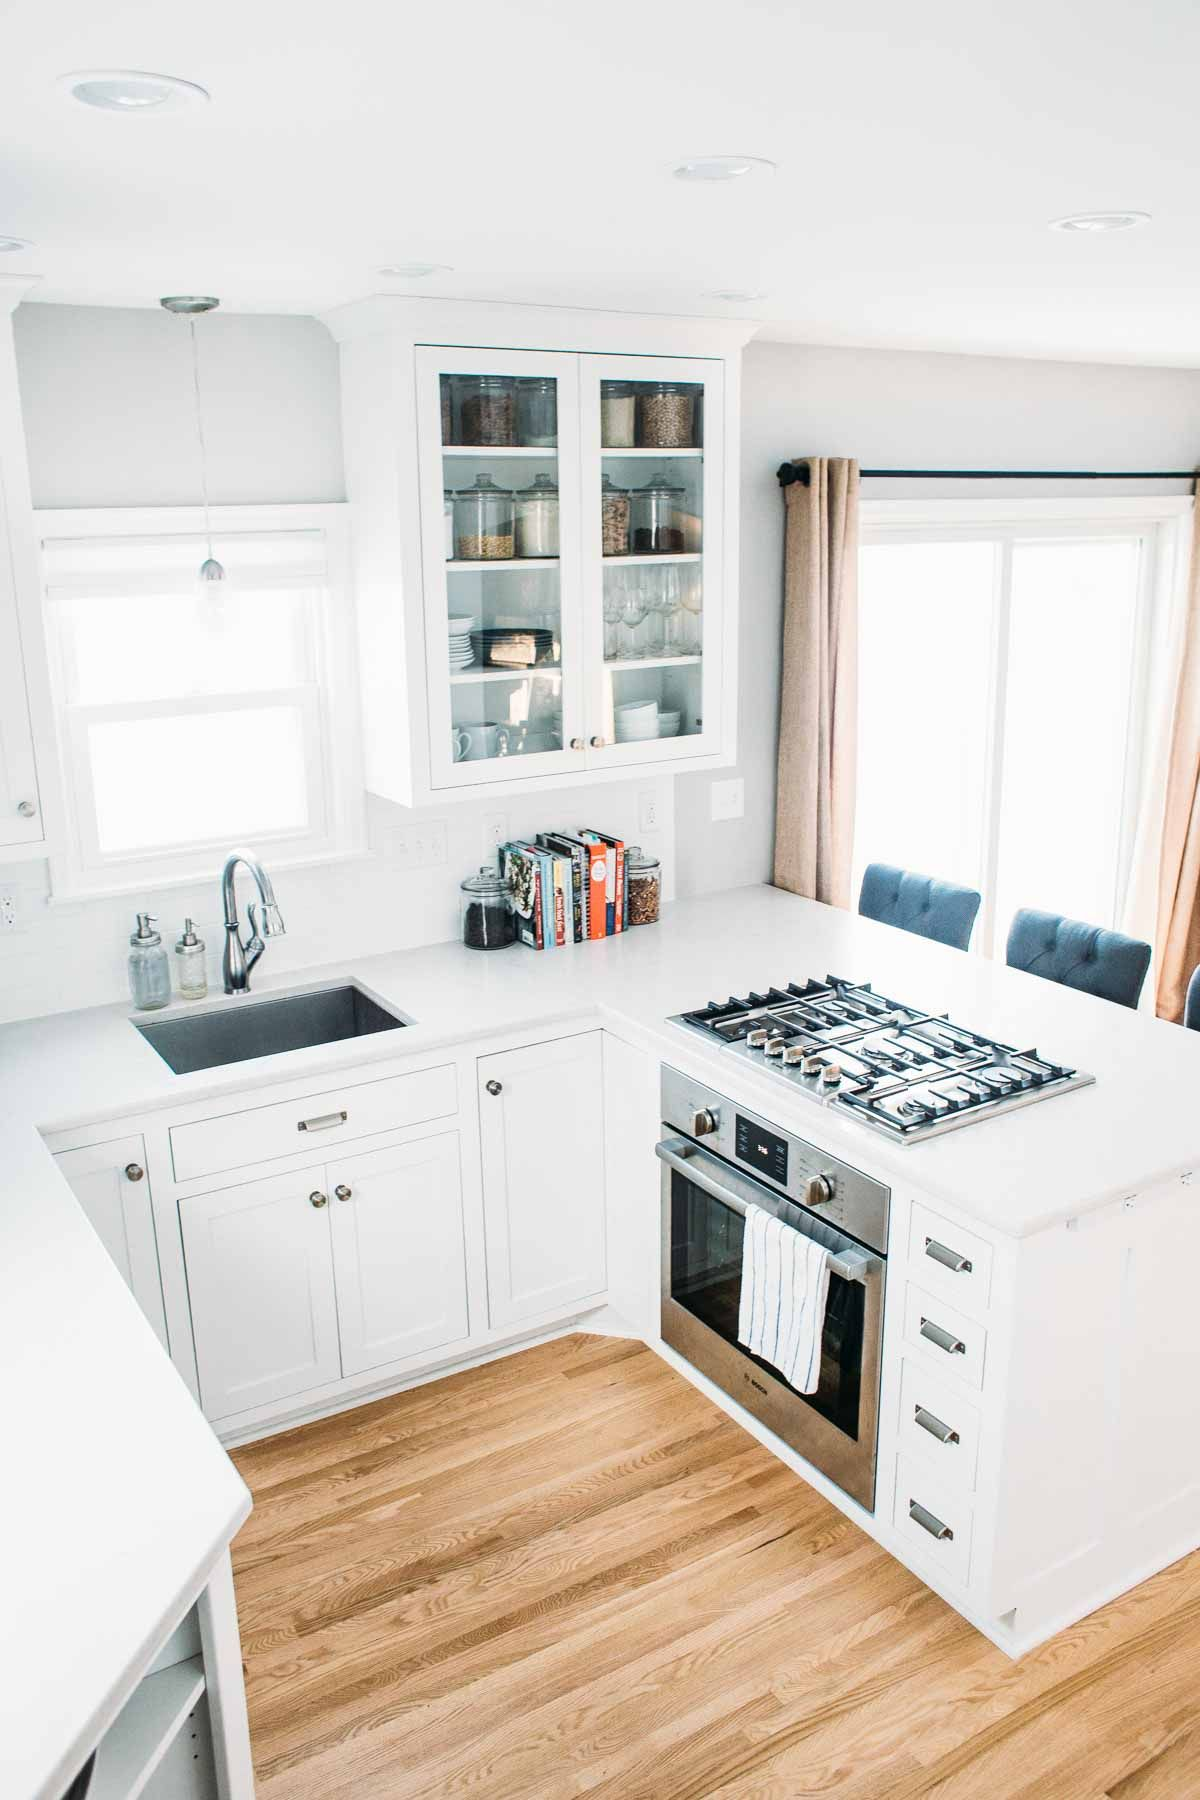 Kitchen remodel at pinch of yum beautiful kitchen reveal with lots of yummy ideas